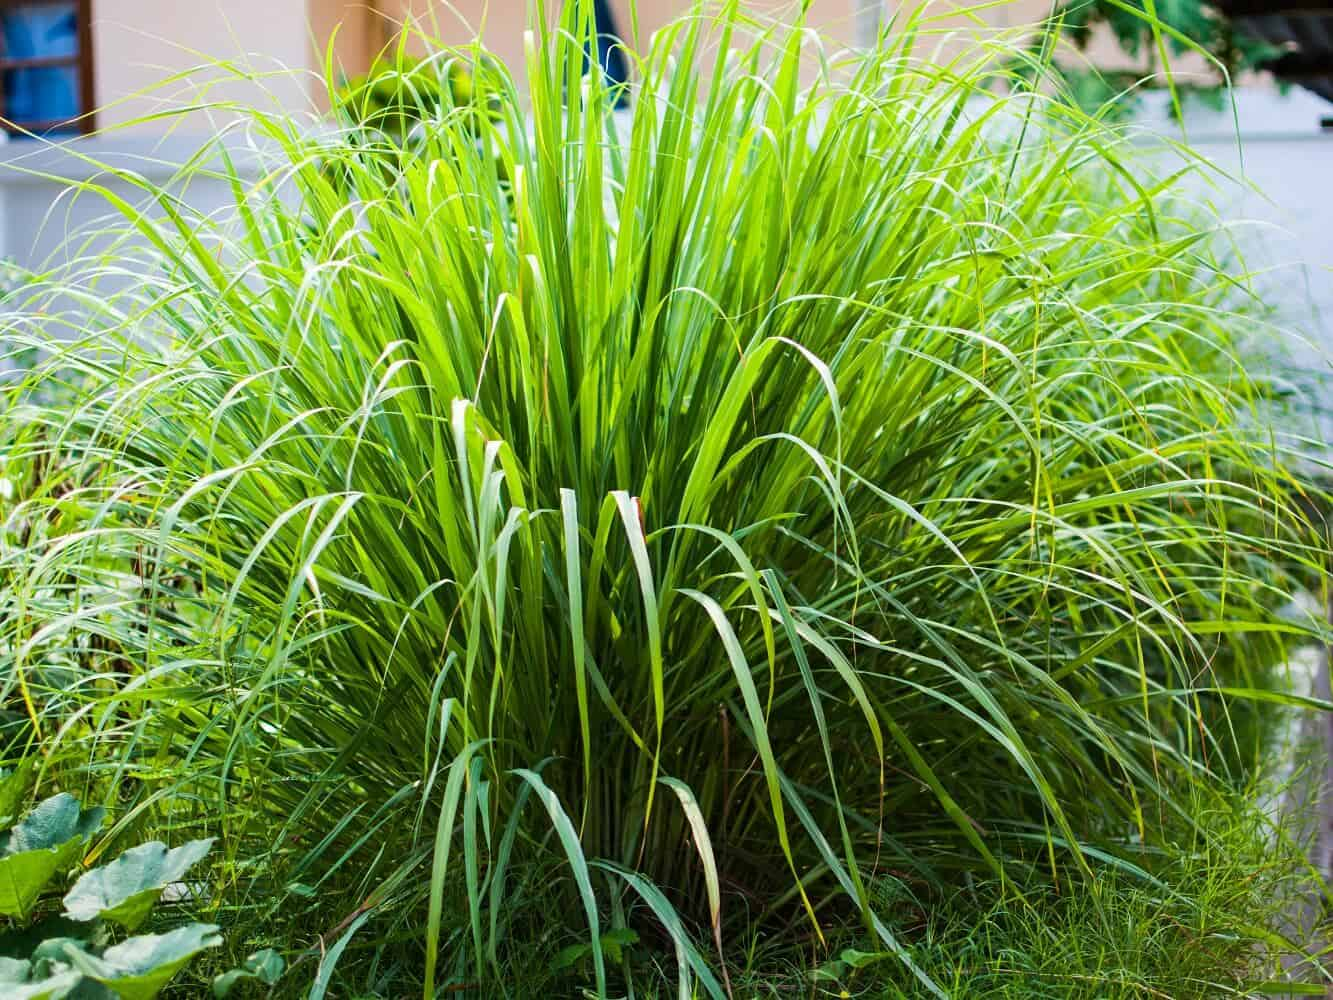 Does Lemongrass Repel Mosquitoes? Here's What Research Says